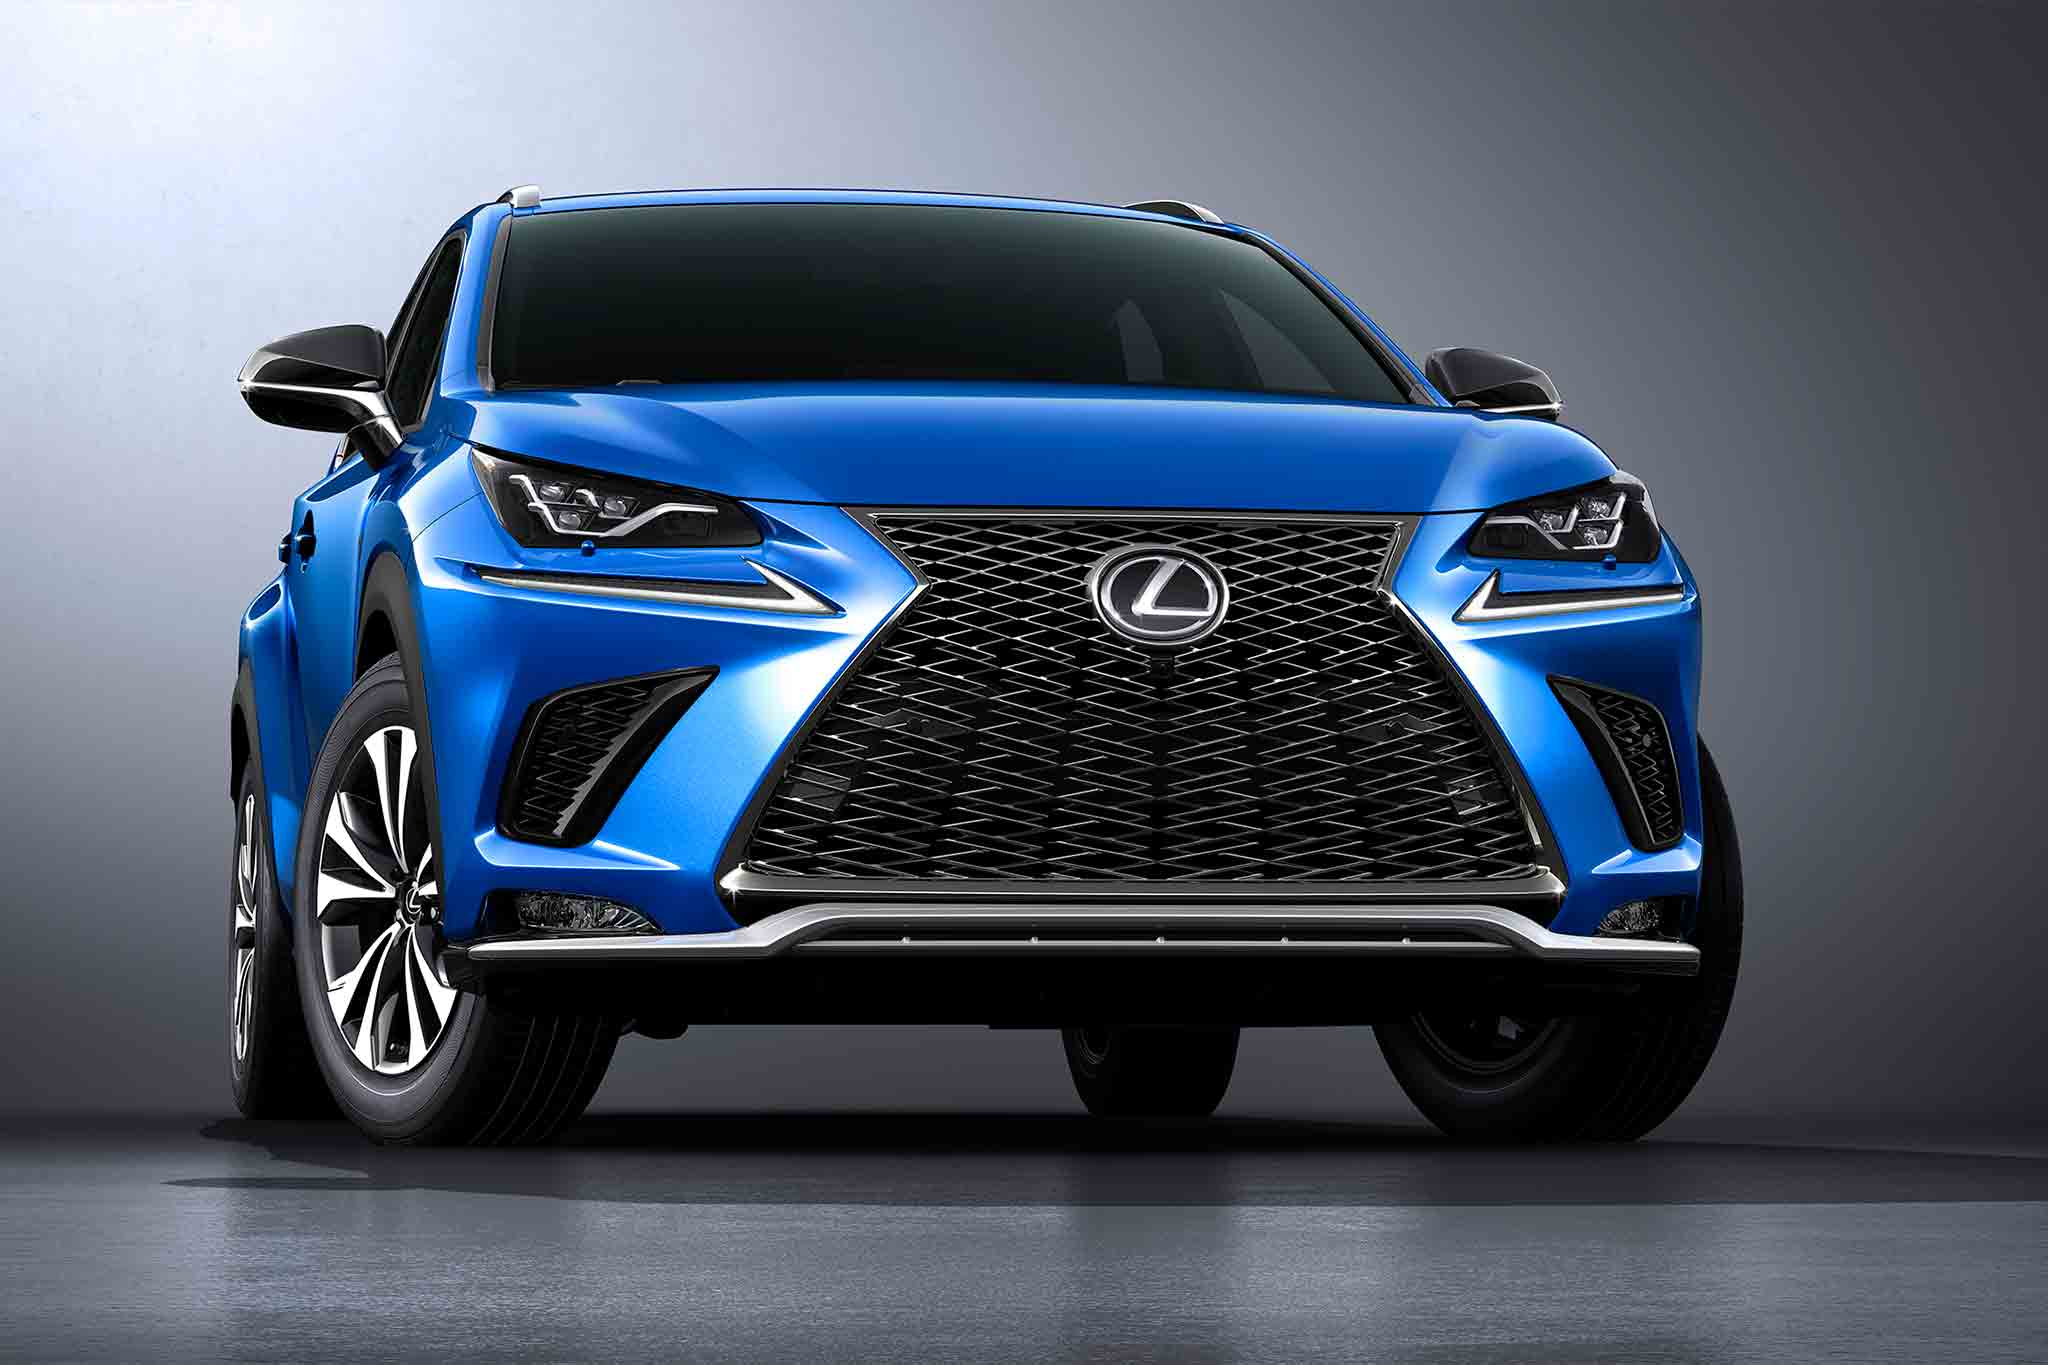 2018 lexus nx 300h review new car release date and review 2018 amanda felicia. Black Bedroom Furniture Sets. Home Design Ideas